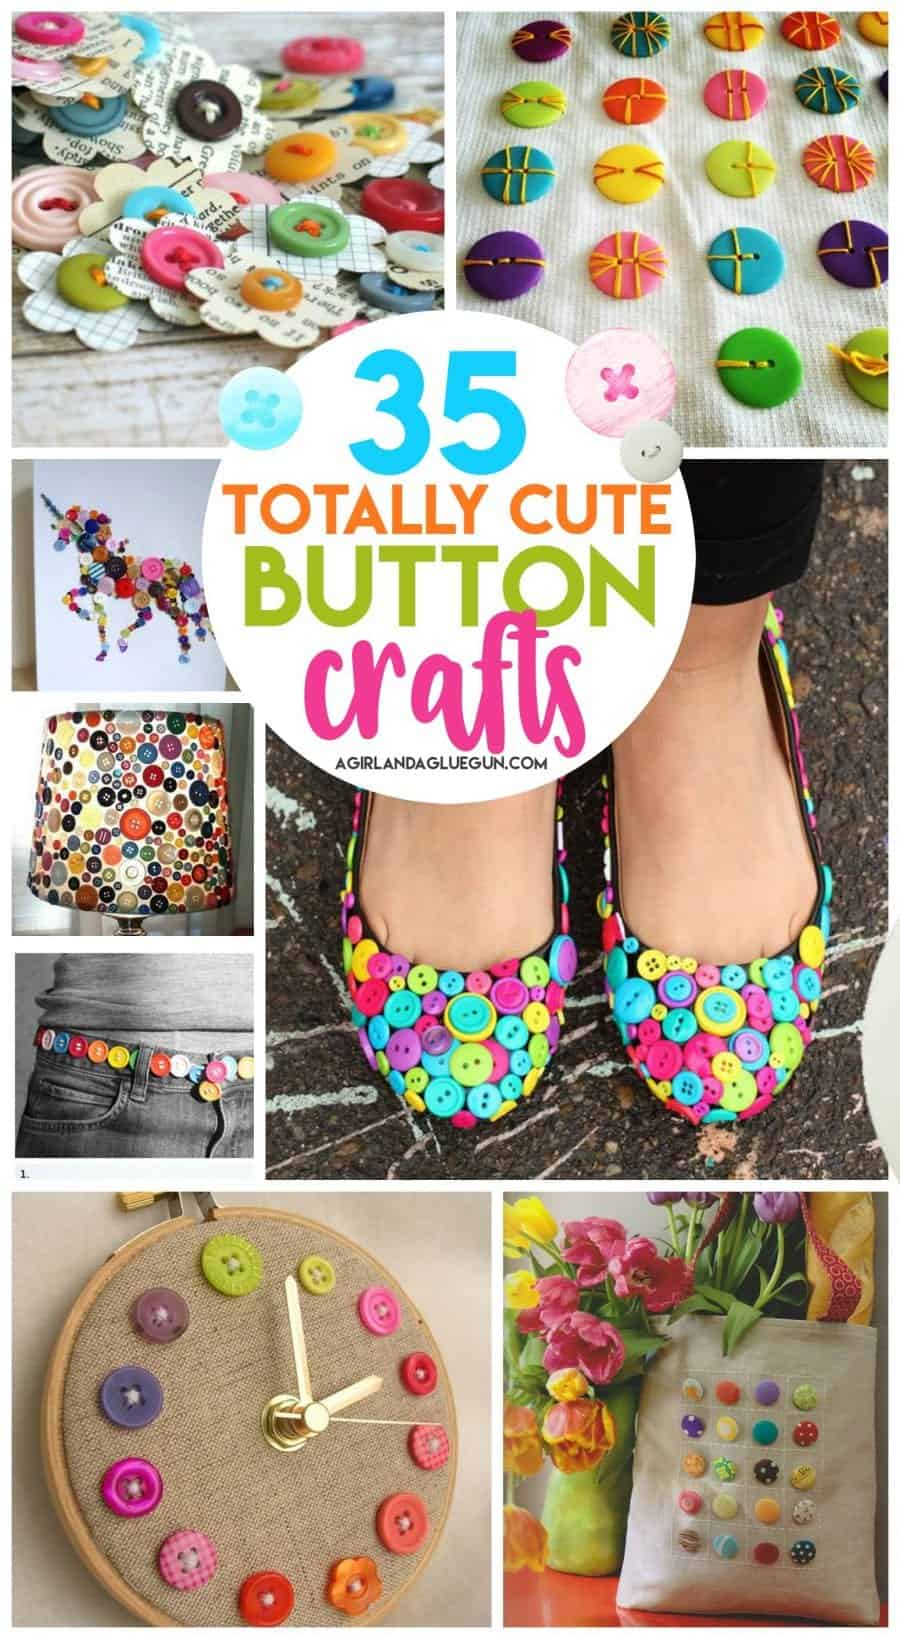 button craft ideas for kids 35 button crafts a and a glue gun 5976